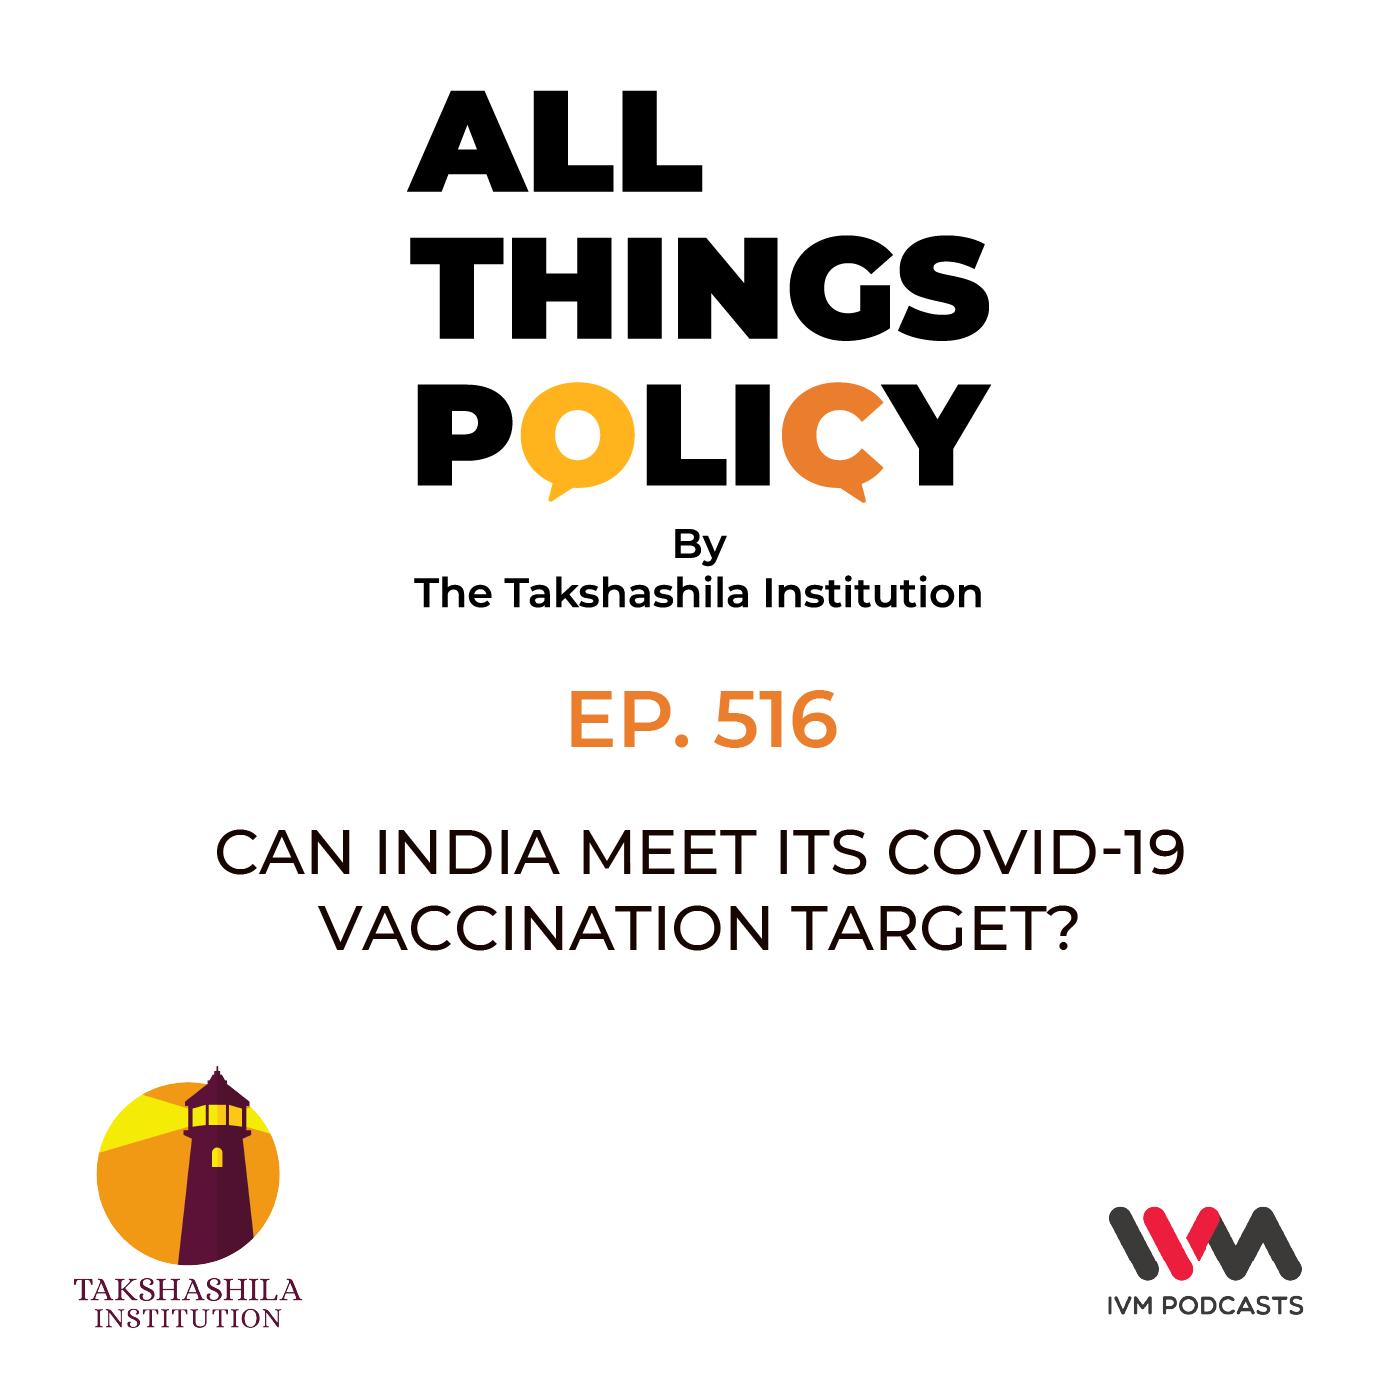 Ep. 516: Can India Meet Its COVID-19 Vaccination Target?